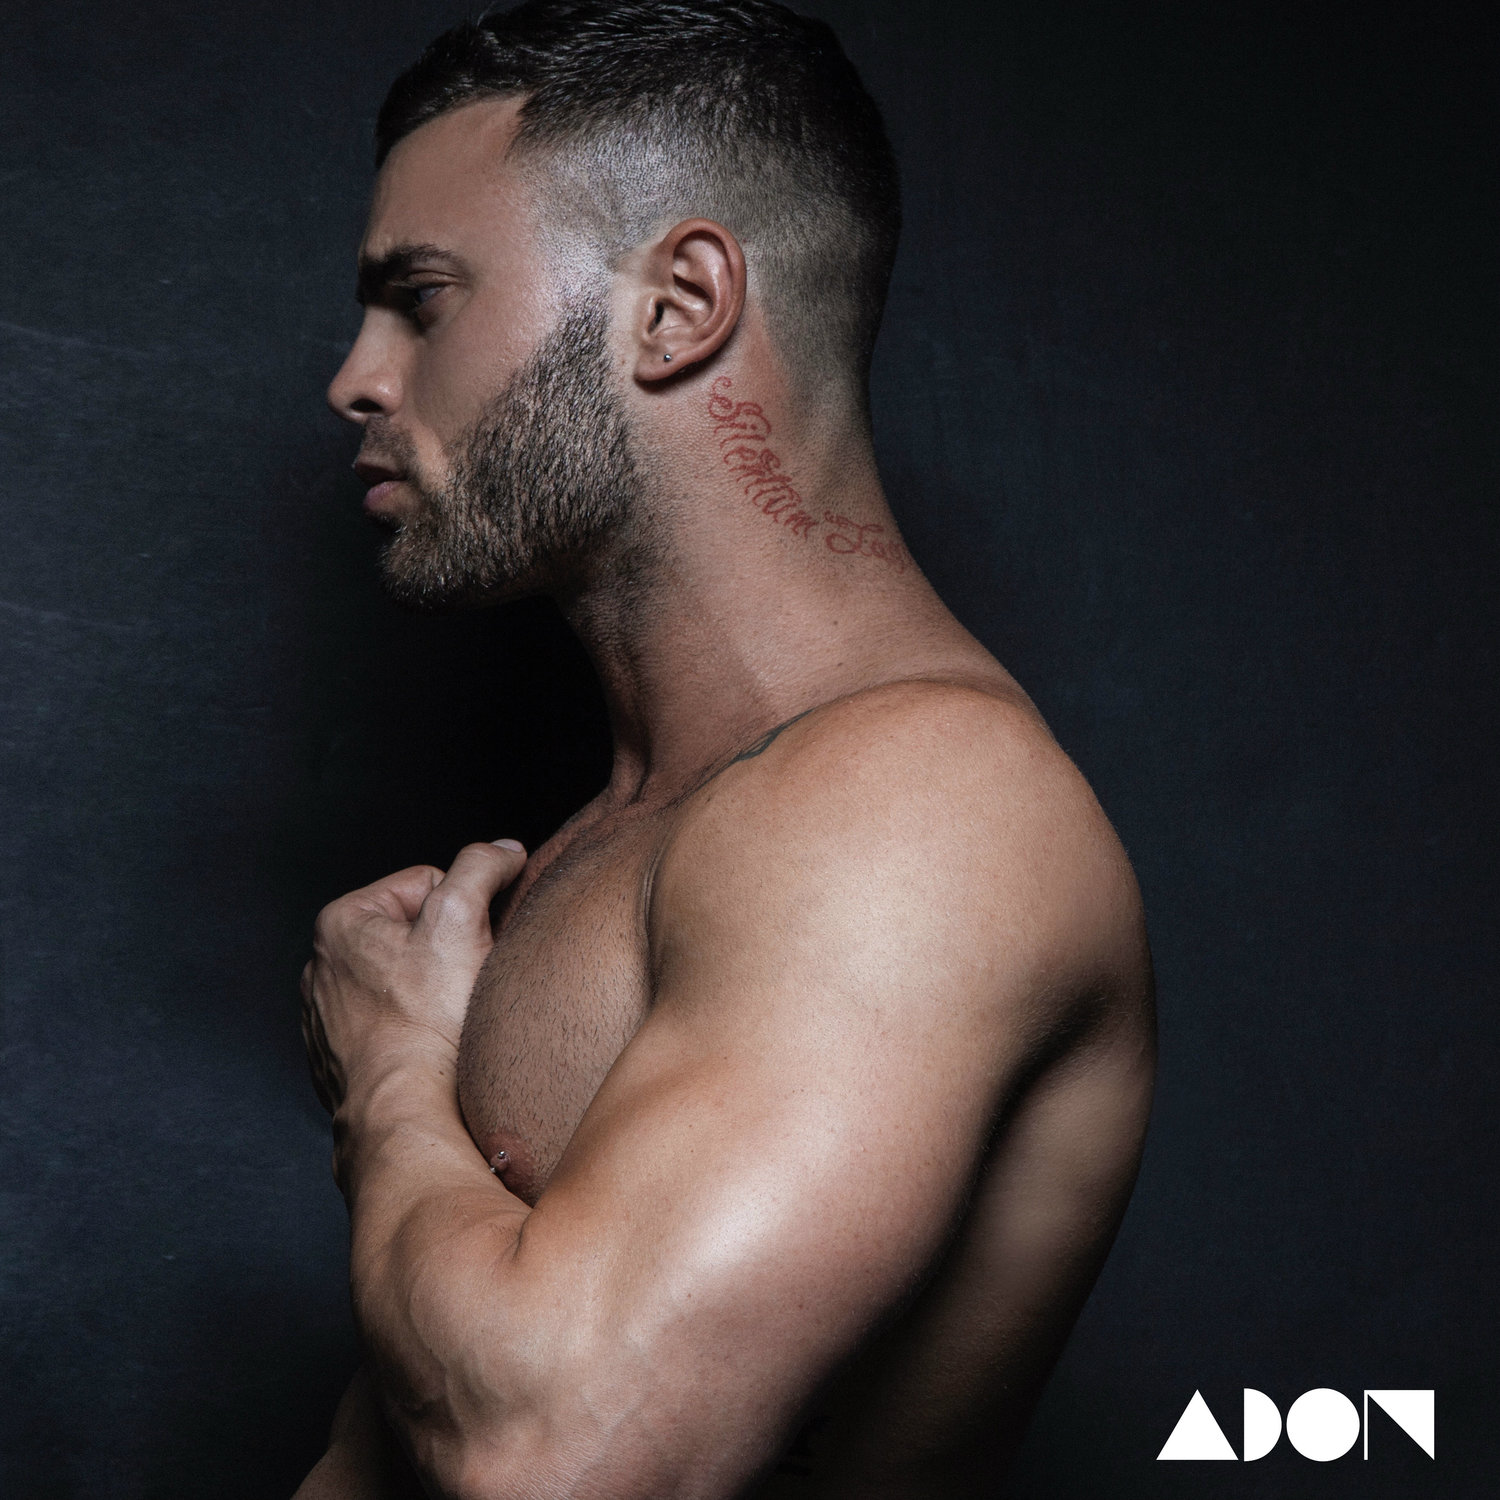 Adon Exclusive: Model Corvin By Rick Day